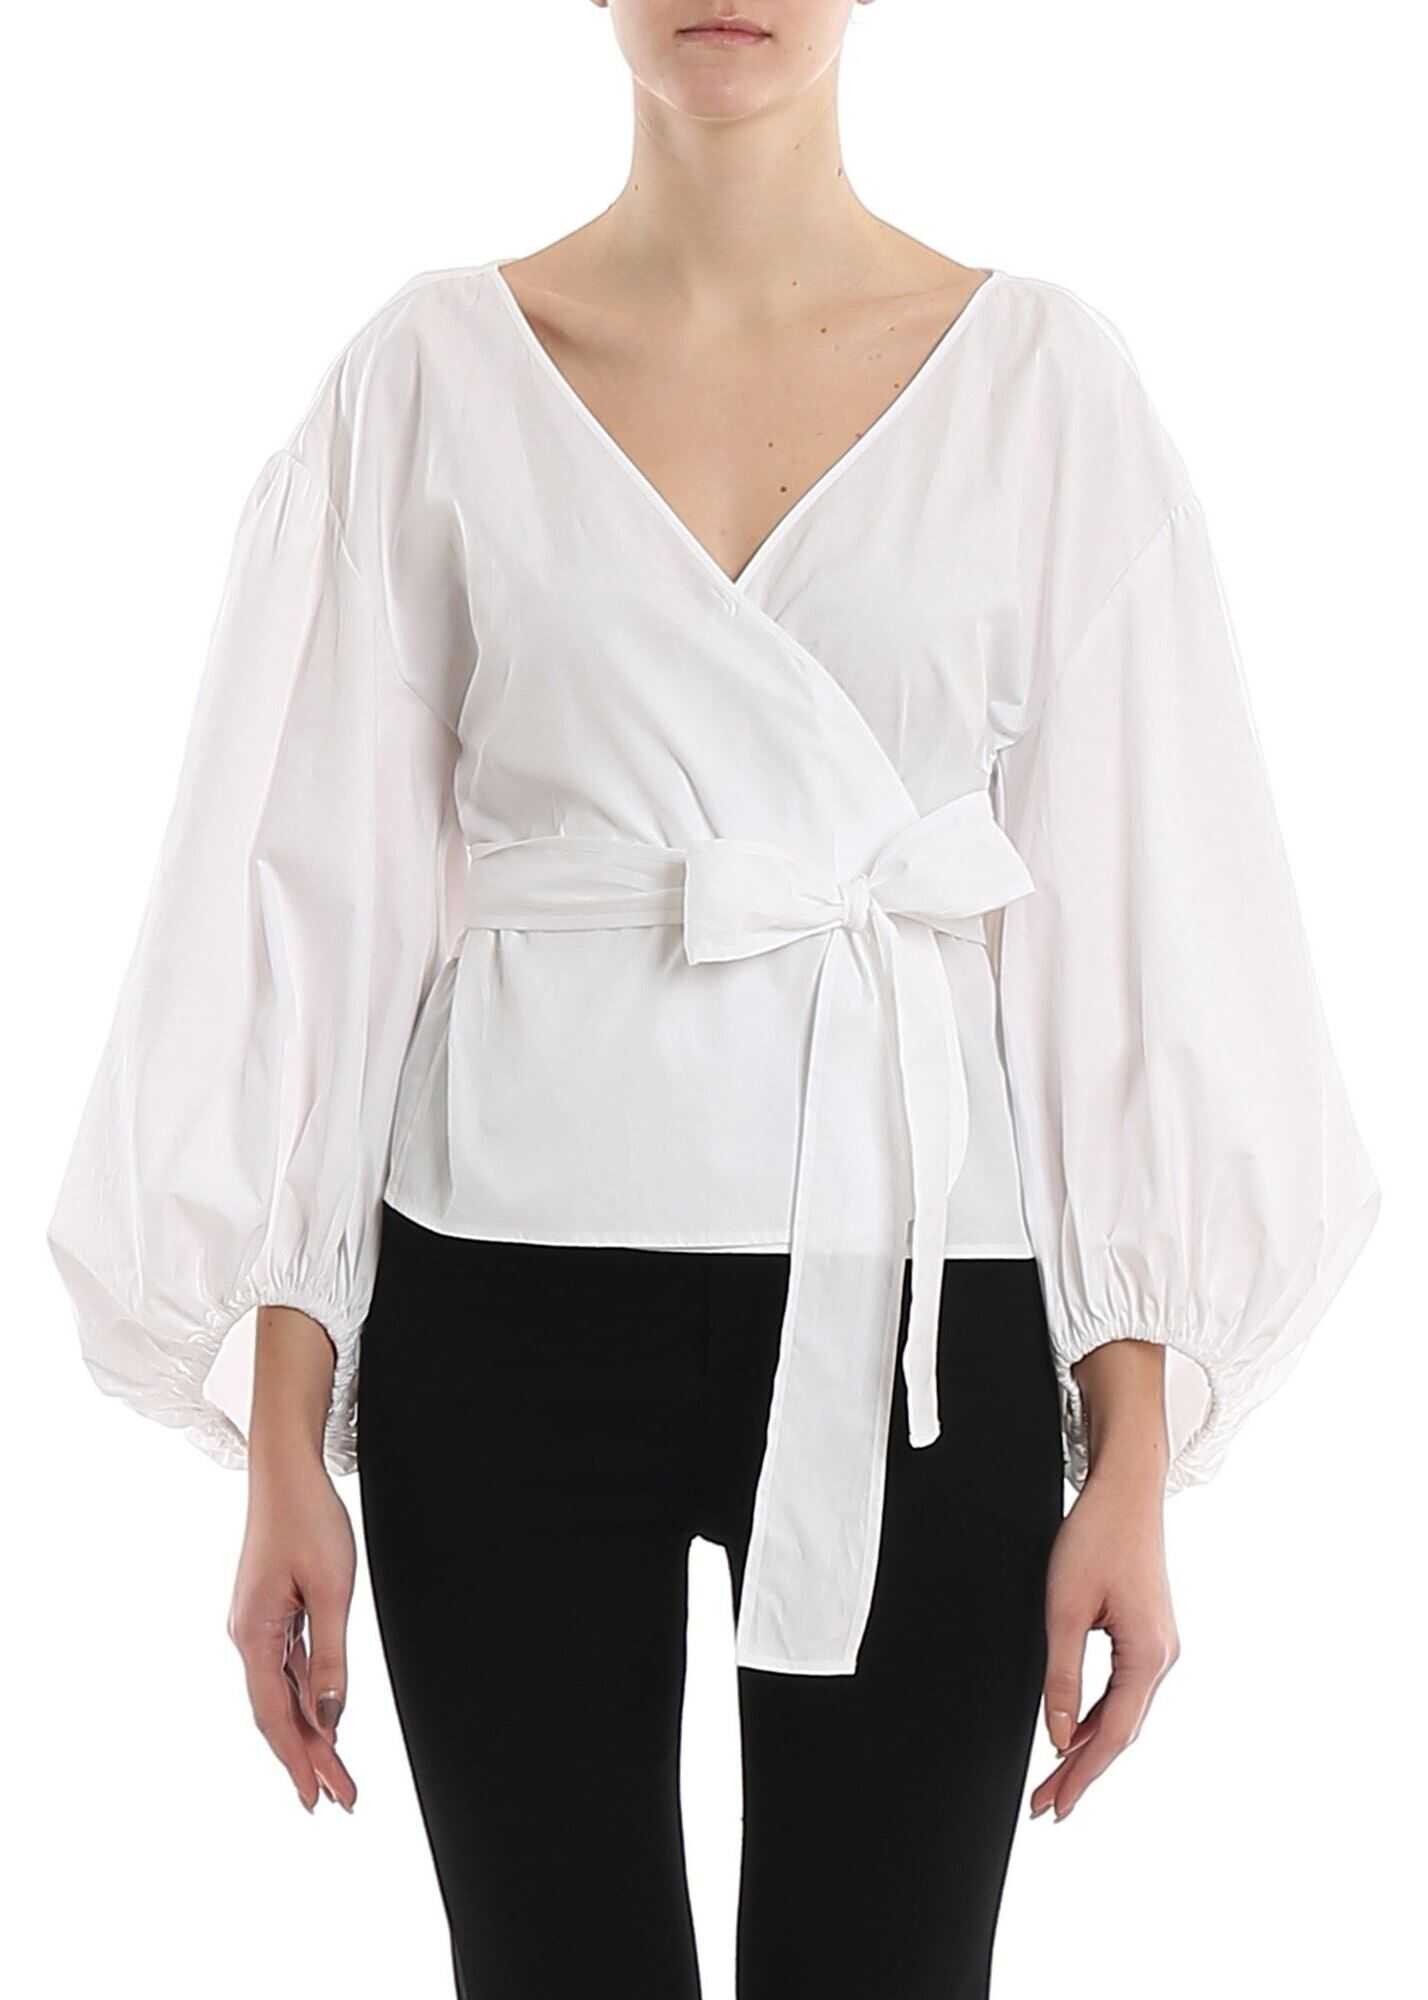 Michael Kors Balloon Sleeved Wrap Blouse White